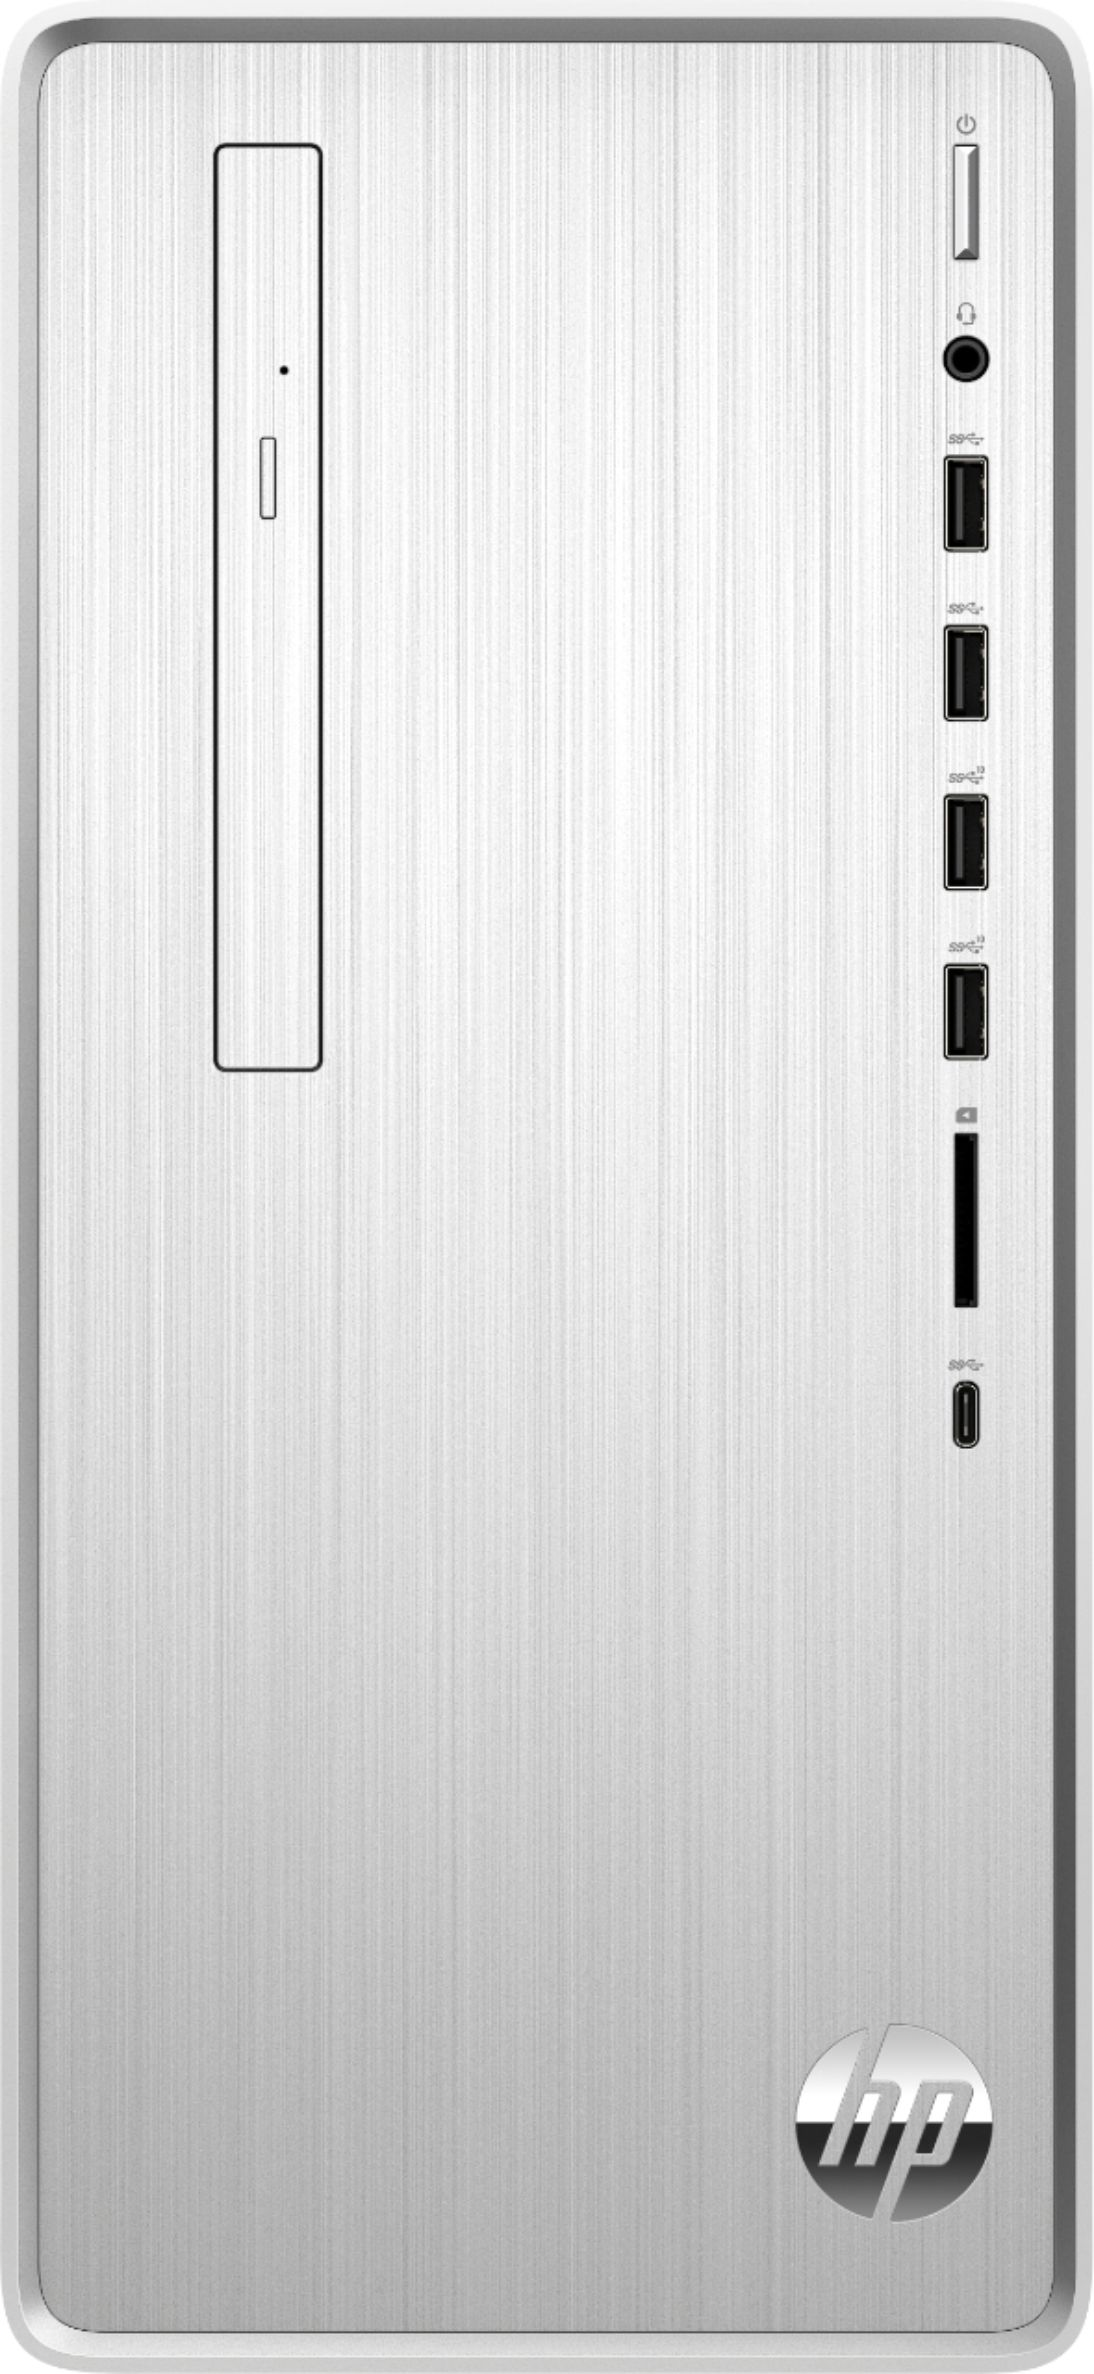 Front Zoom. HP - Pavilion Desktop - Intel Core i3 - 8GB Memory - 256GB Solid State Drive - Natural Silver.